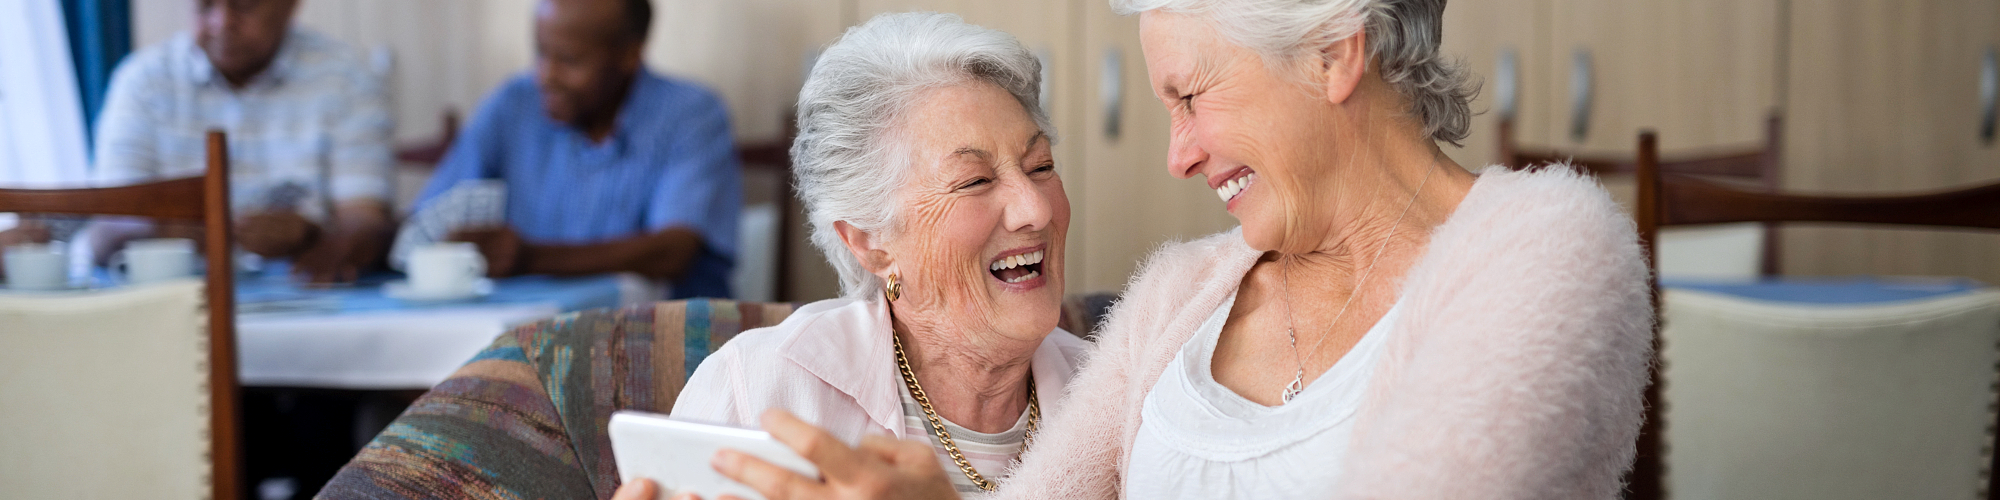 """old women looking at each other while smiling"""""""